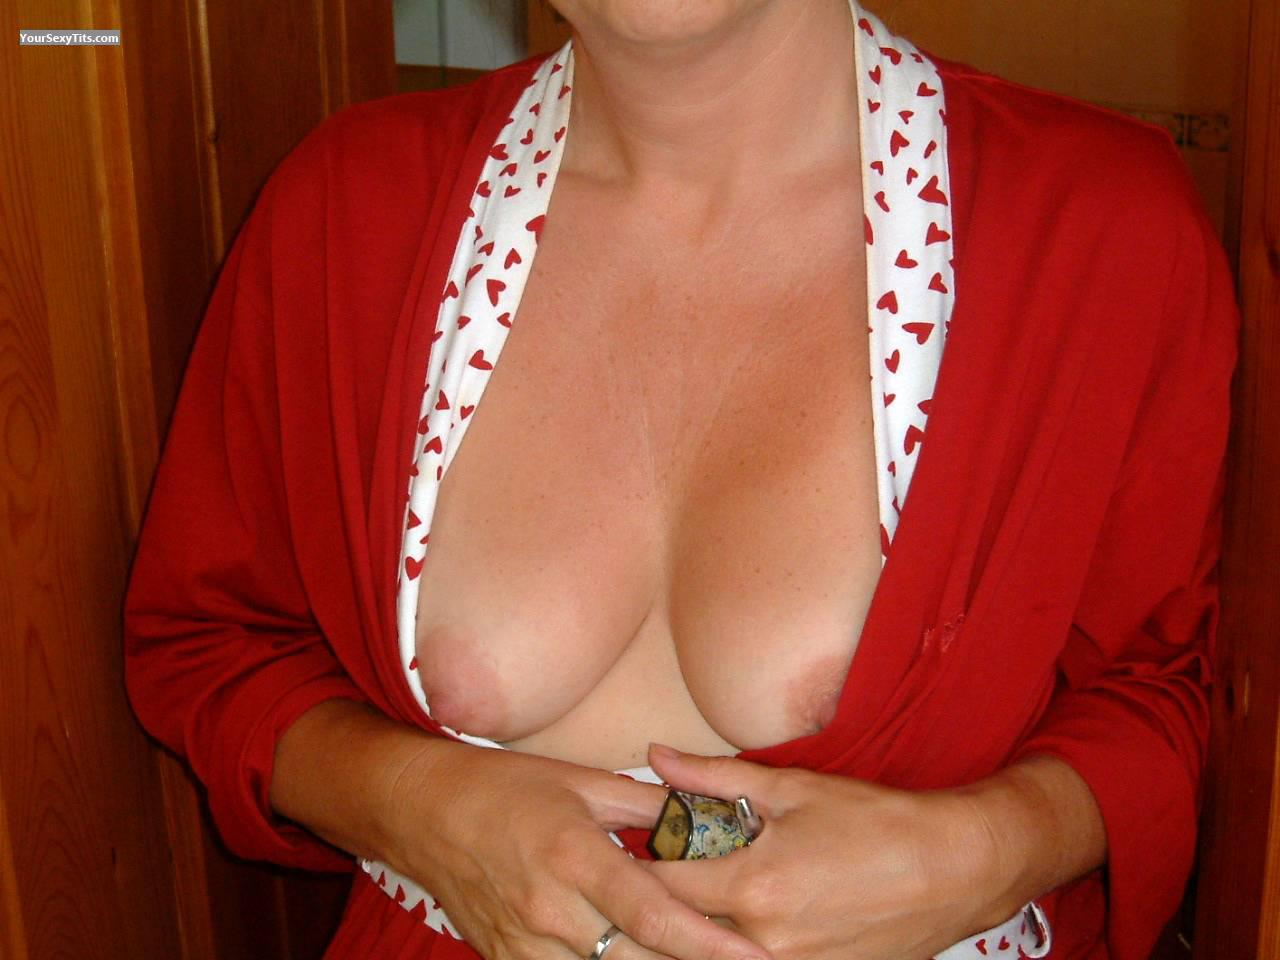 Tit Flash: Small Tits - Topless from United Kingdom